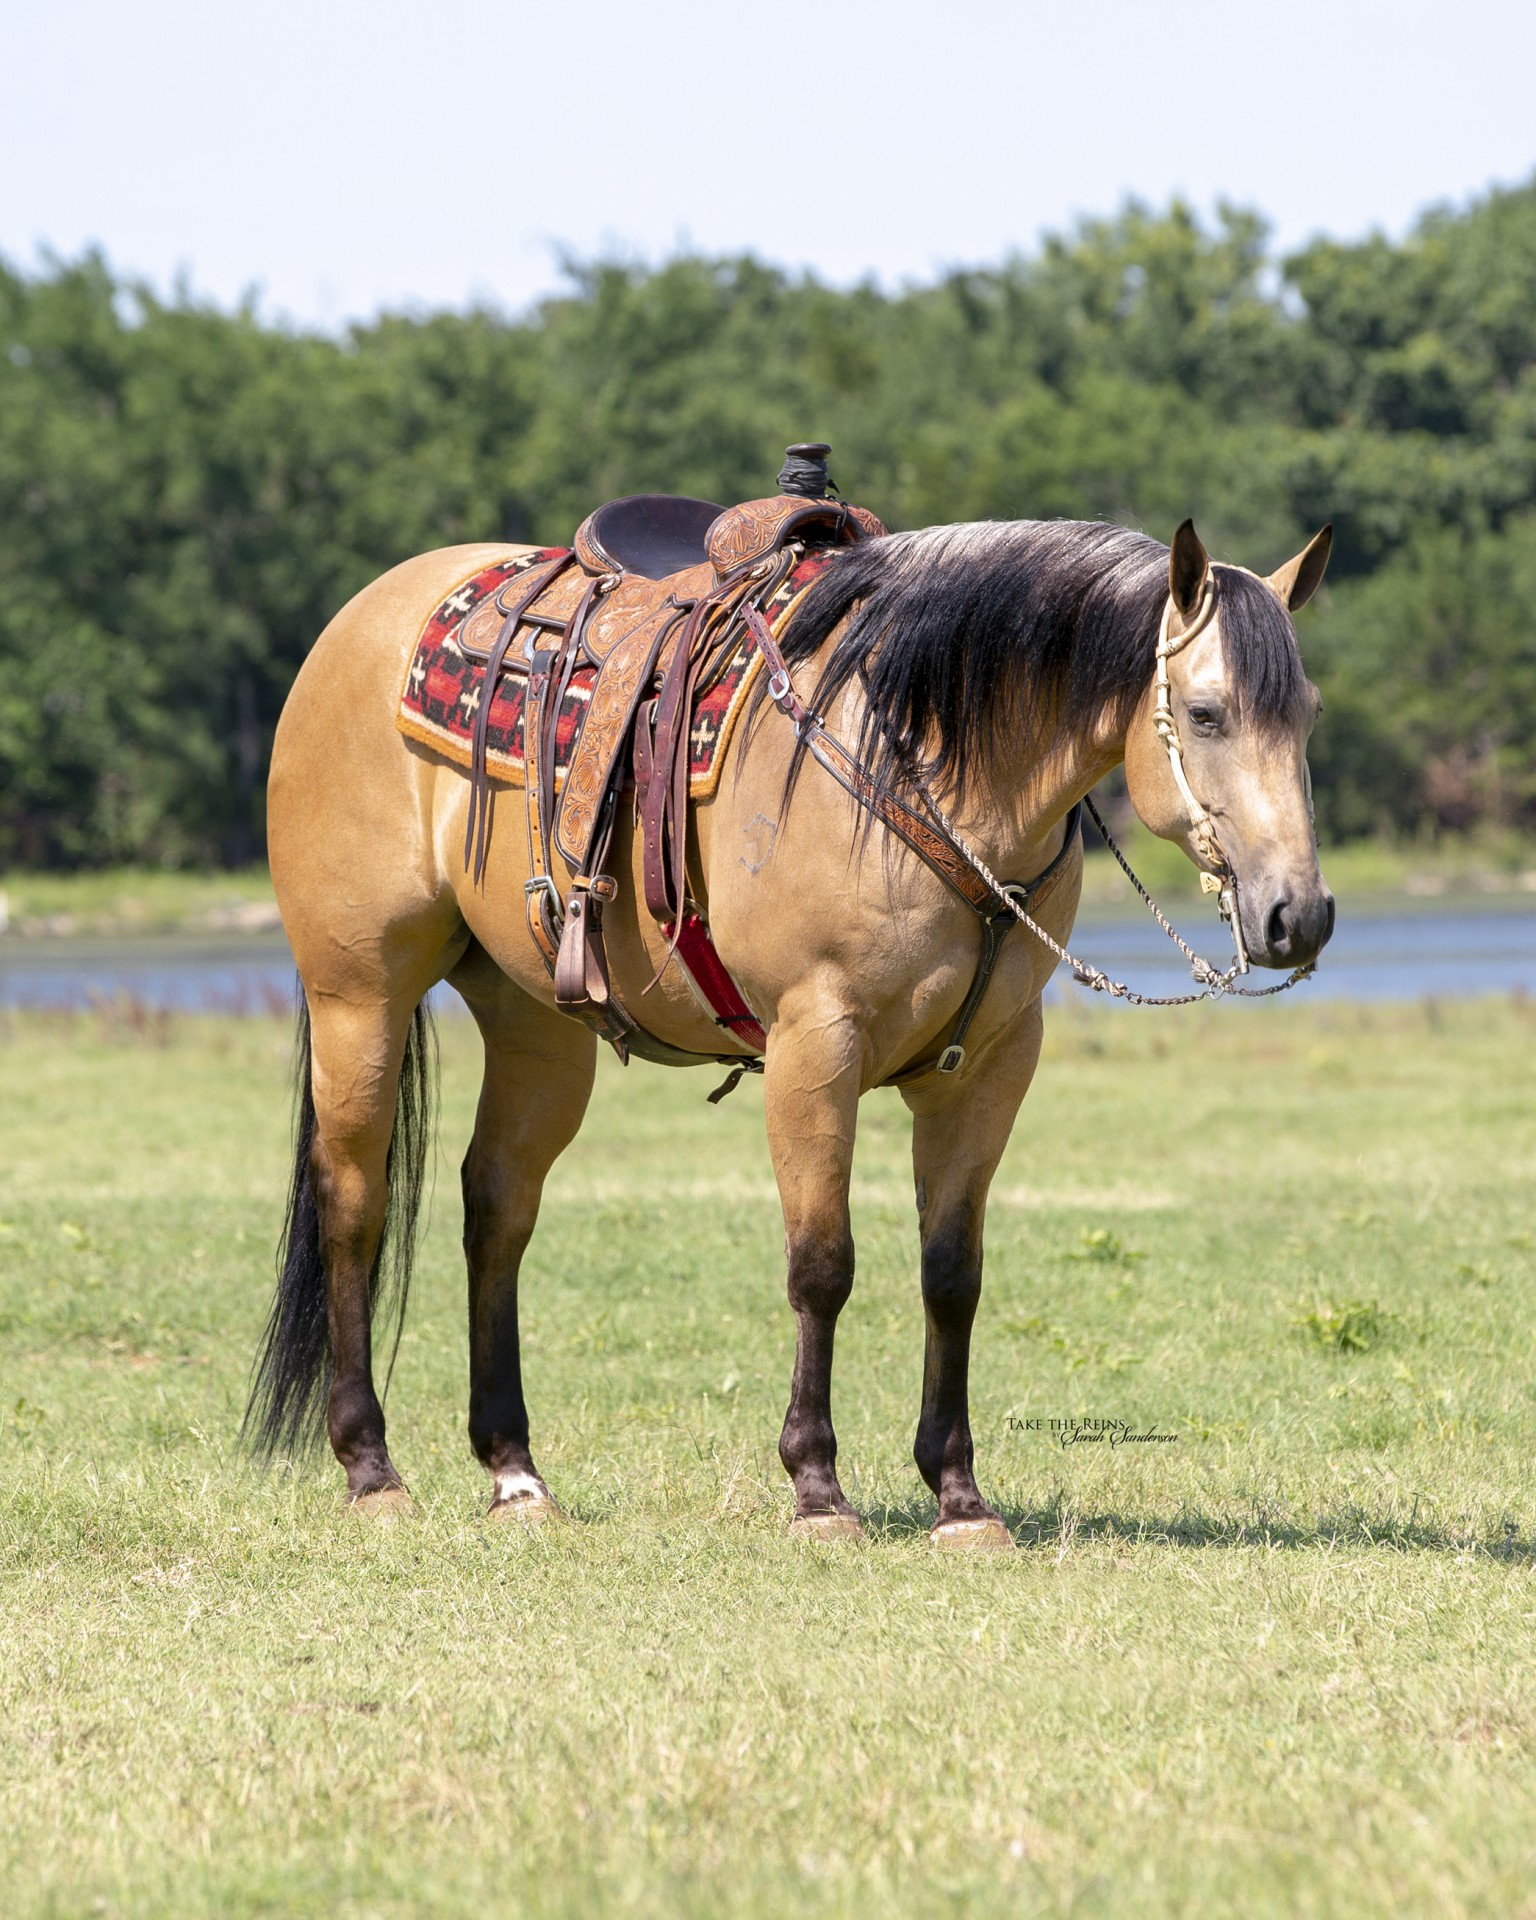 Chisholm Ranch Horse Delux Big Gorgeous Head Horse Tricks 100 Gentle Mounted Shooting Ranch Riding